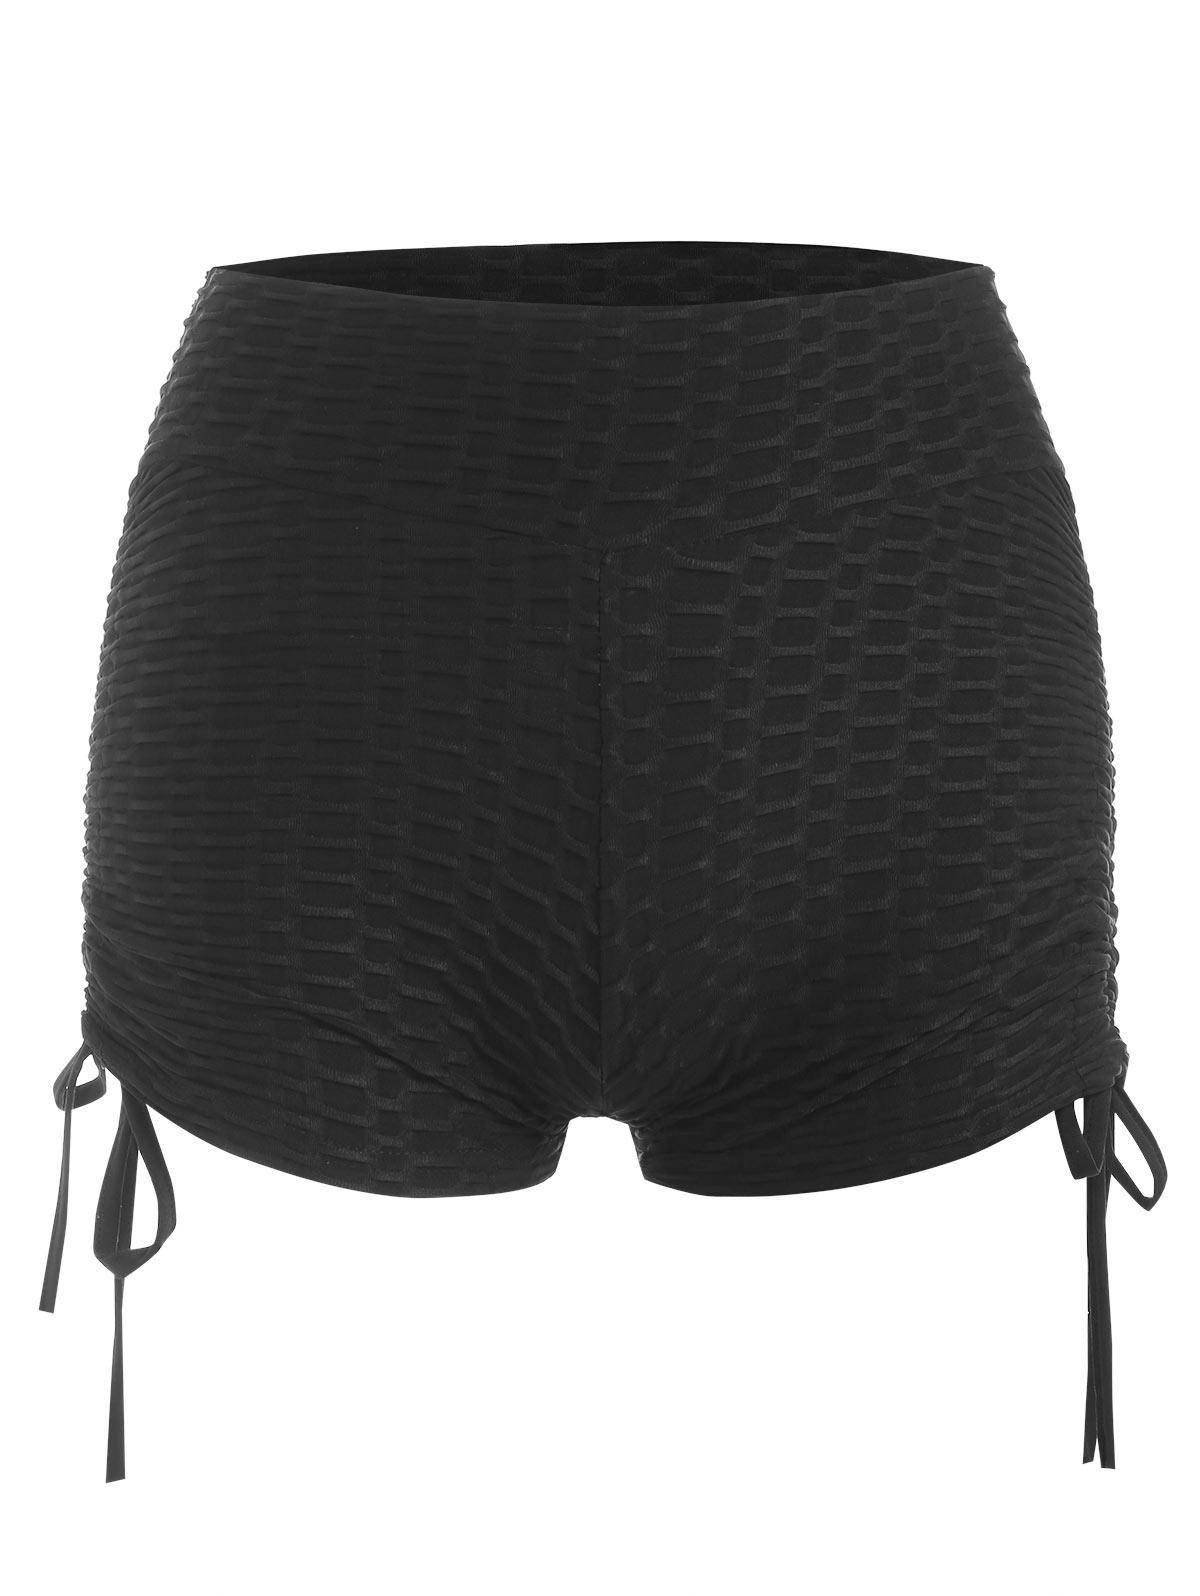 Textured Ruched Cinched Gym Shorts